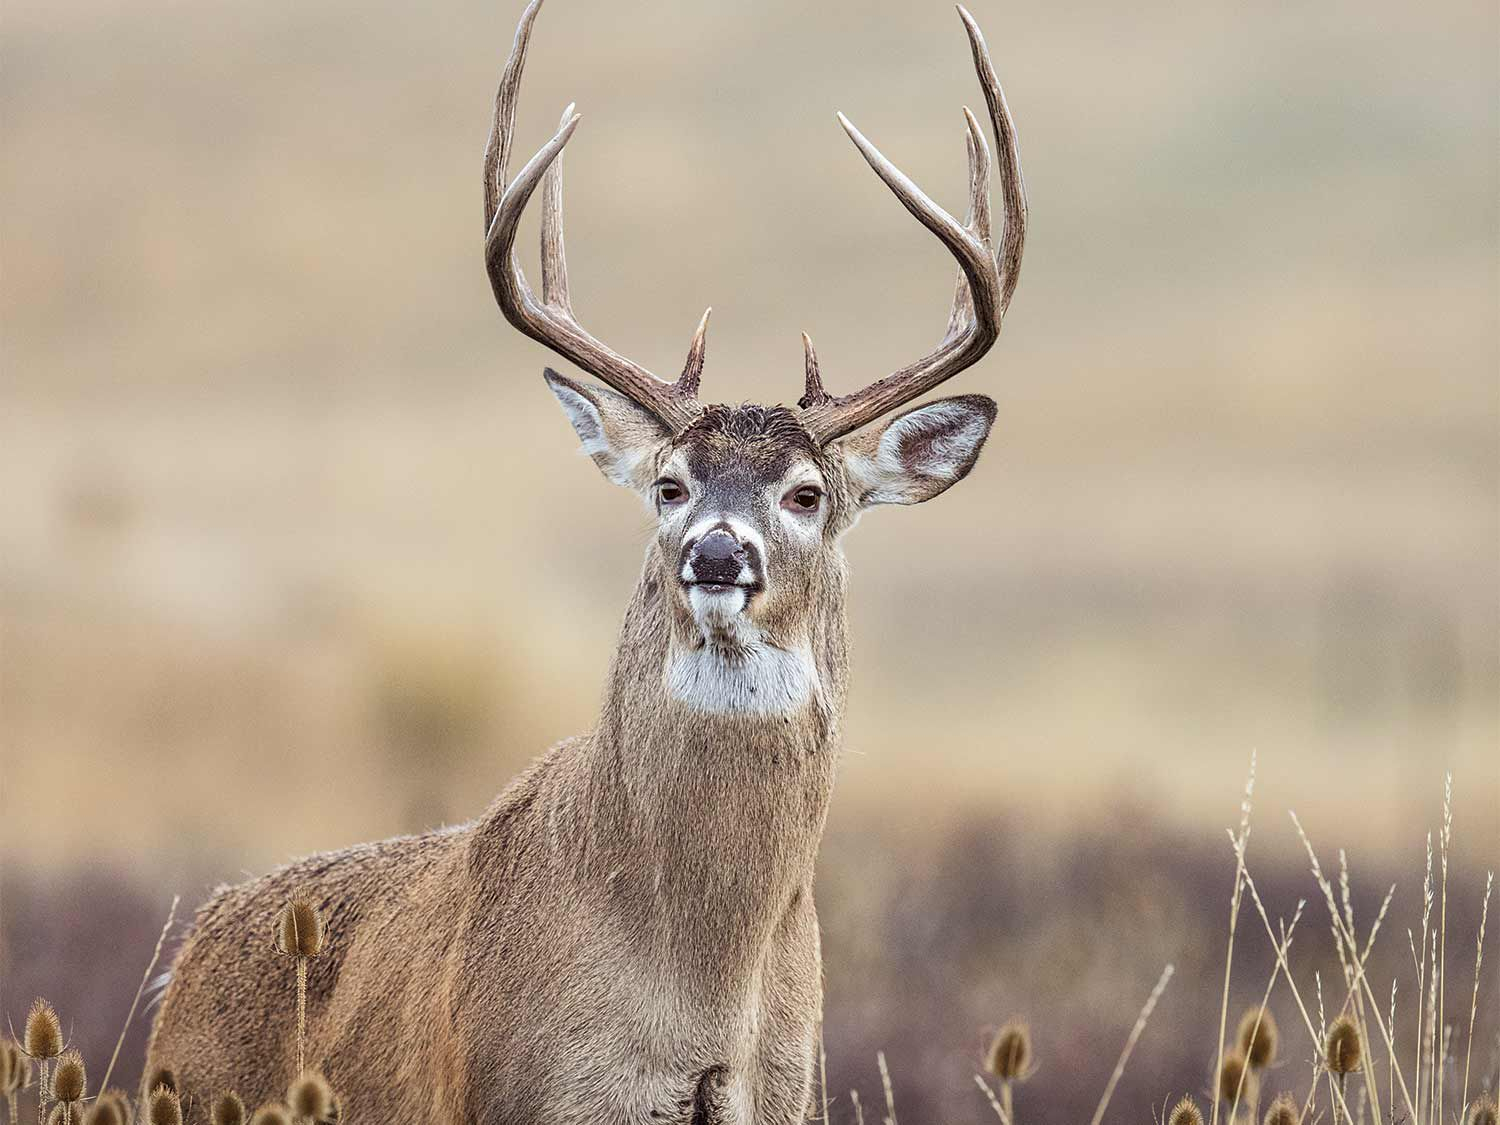 The 25 Best Deer Hunting Tips For The Whitetail Rut | Field